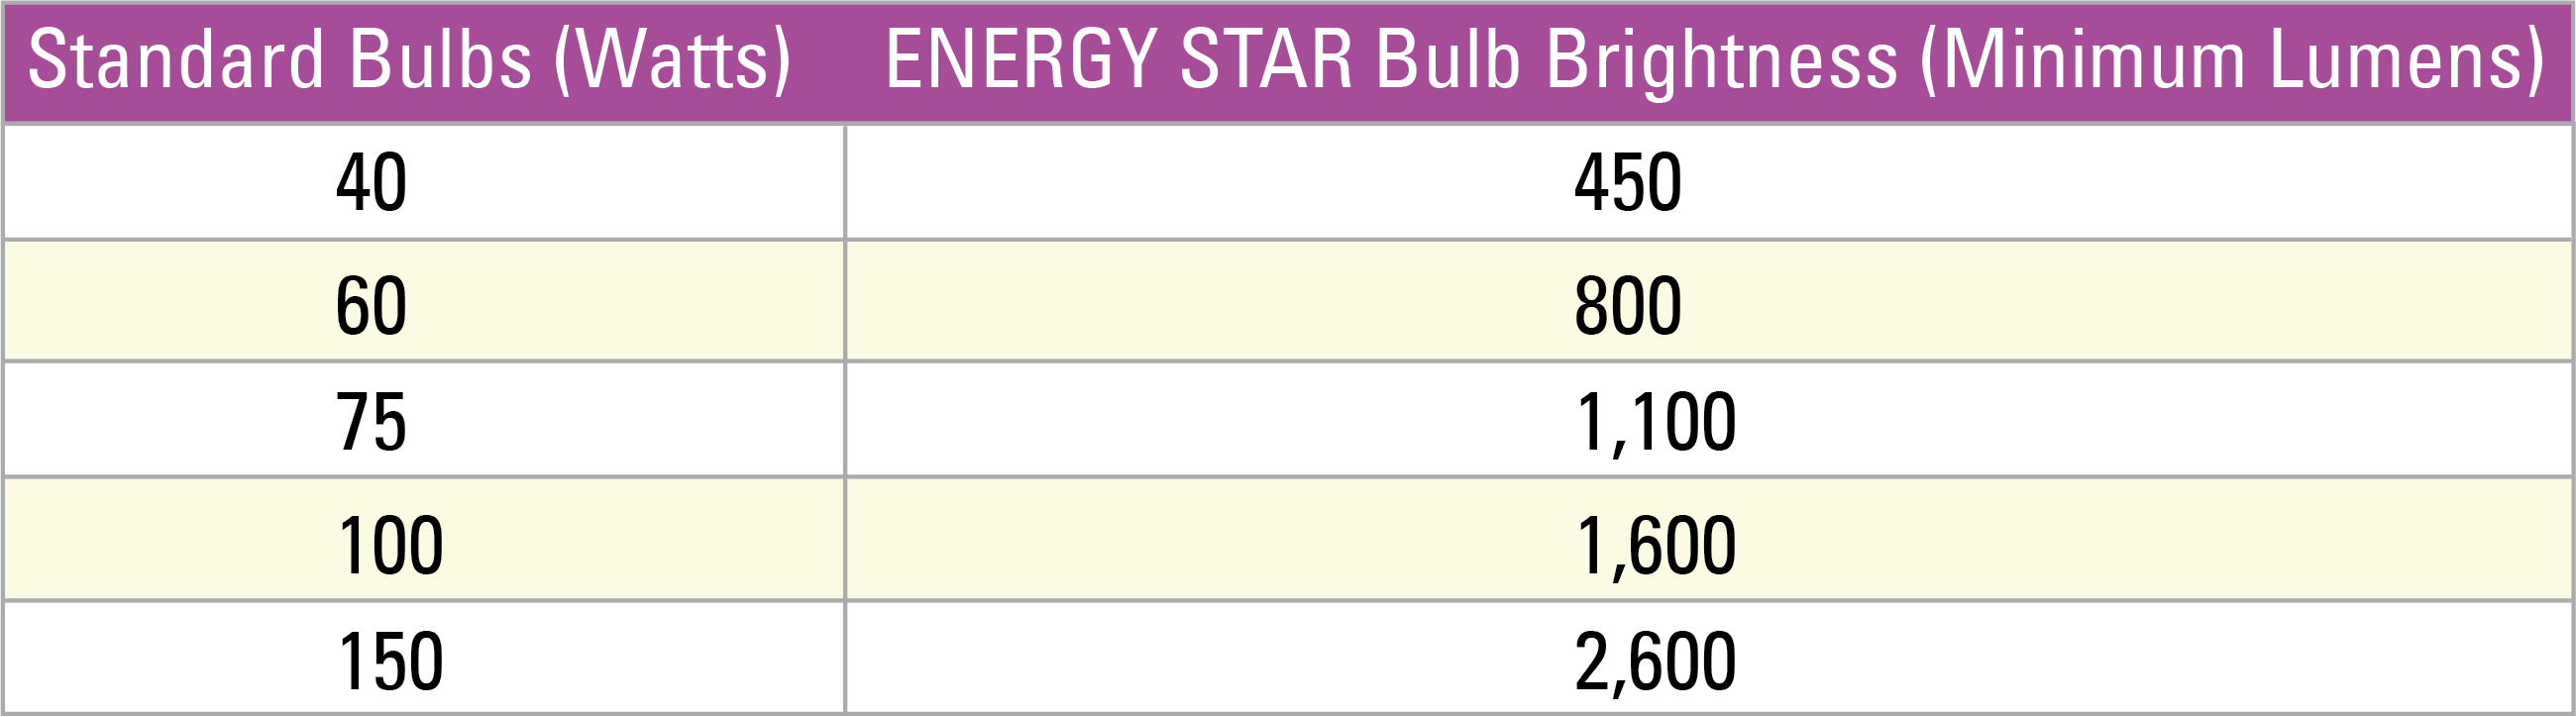 ENERGY STAR Bulbs